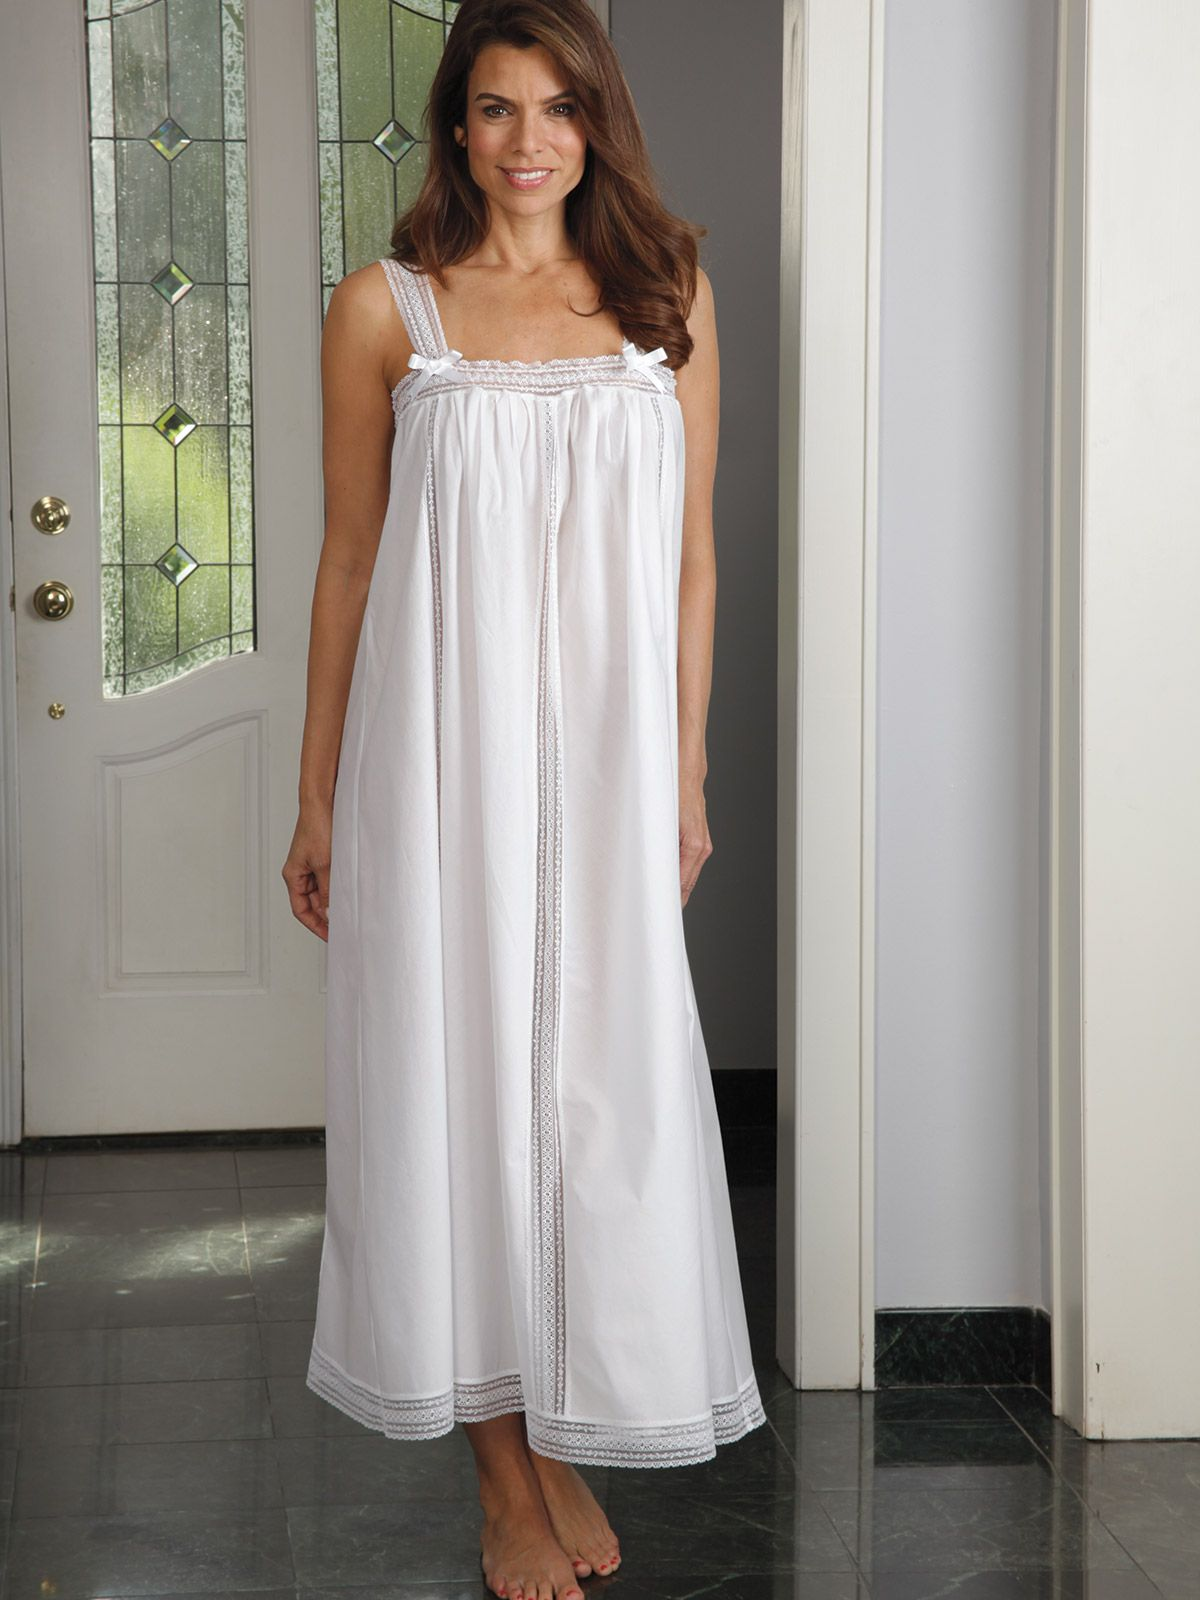 Liza - Luxury  Nightwear - Schweitzer Linen White becomes the night in this  sexy and airy sleeping  gown. Satin bows and lace straps 19251c700